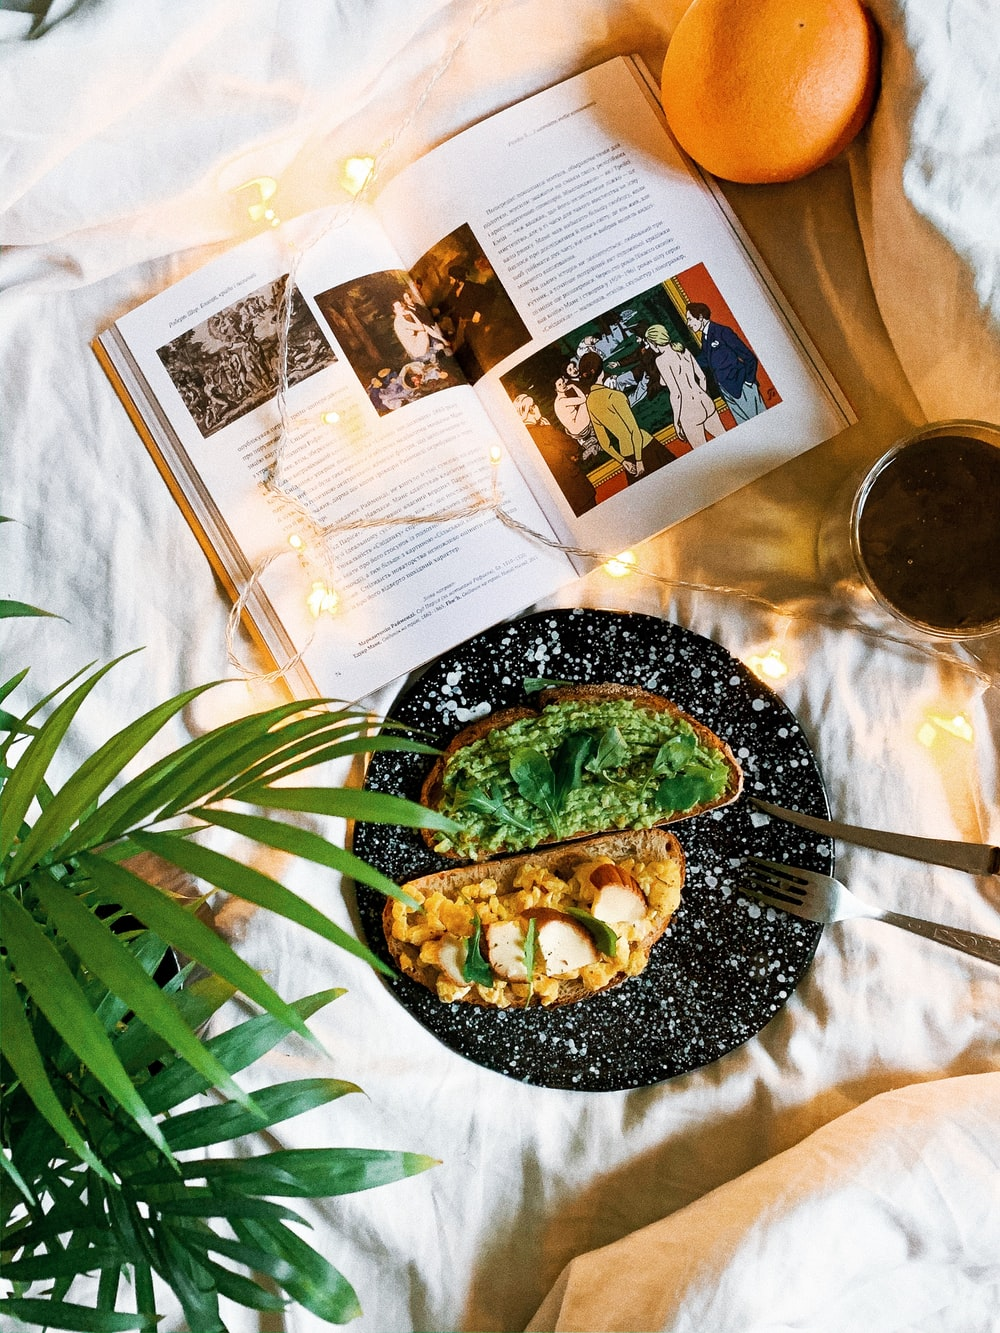 open book near bread with guacamole on top and glass of coffee